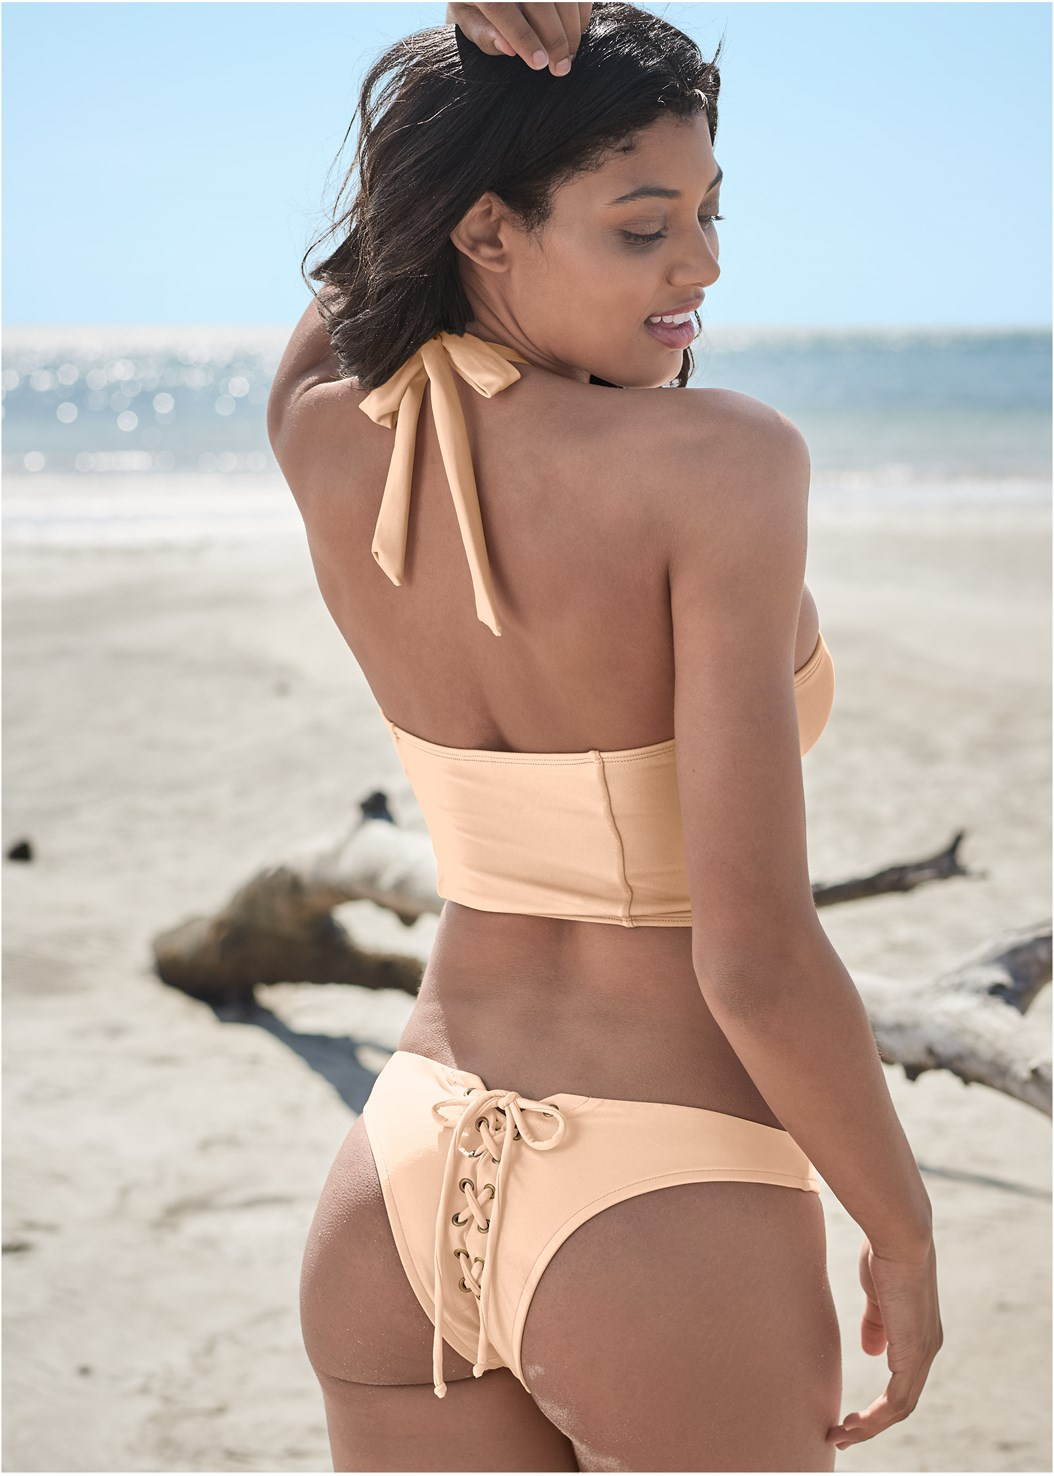 Sports Illustrated Swim™ Lace Up Back Cheeky Bottom,Sports Illustrated Swim™ Keep Up Grommet Top,Sports Illustrated Swim™ The Bahia Top